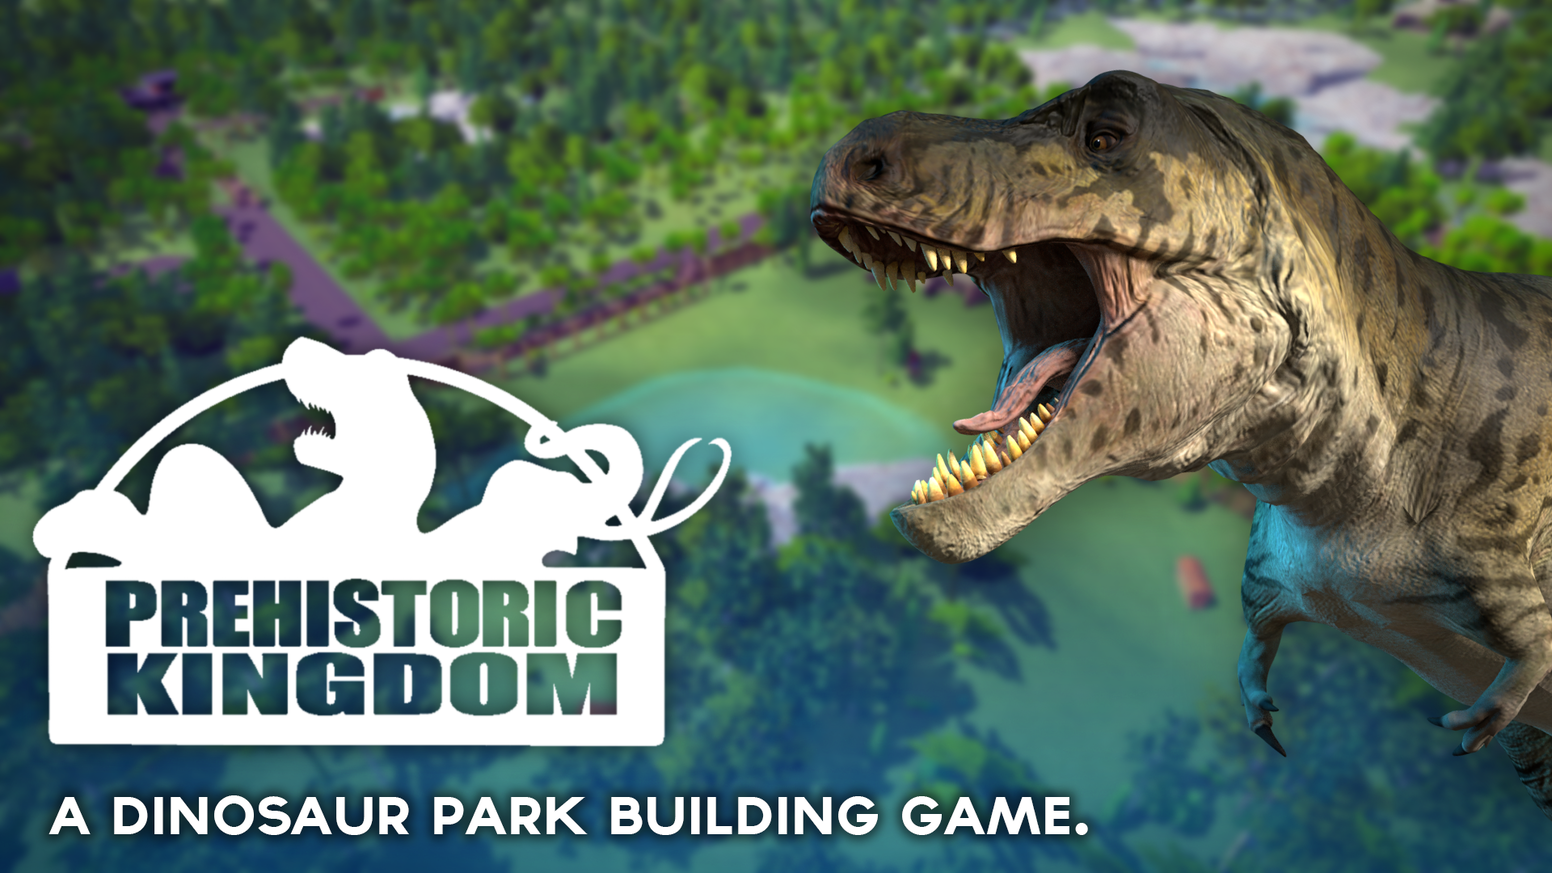 Prehistoric Kingdom is a zoo building simulator game focused on the creation and management of a theme park filled with extinct animals.